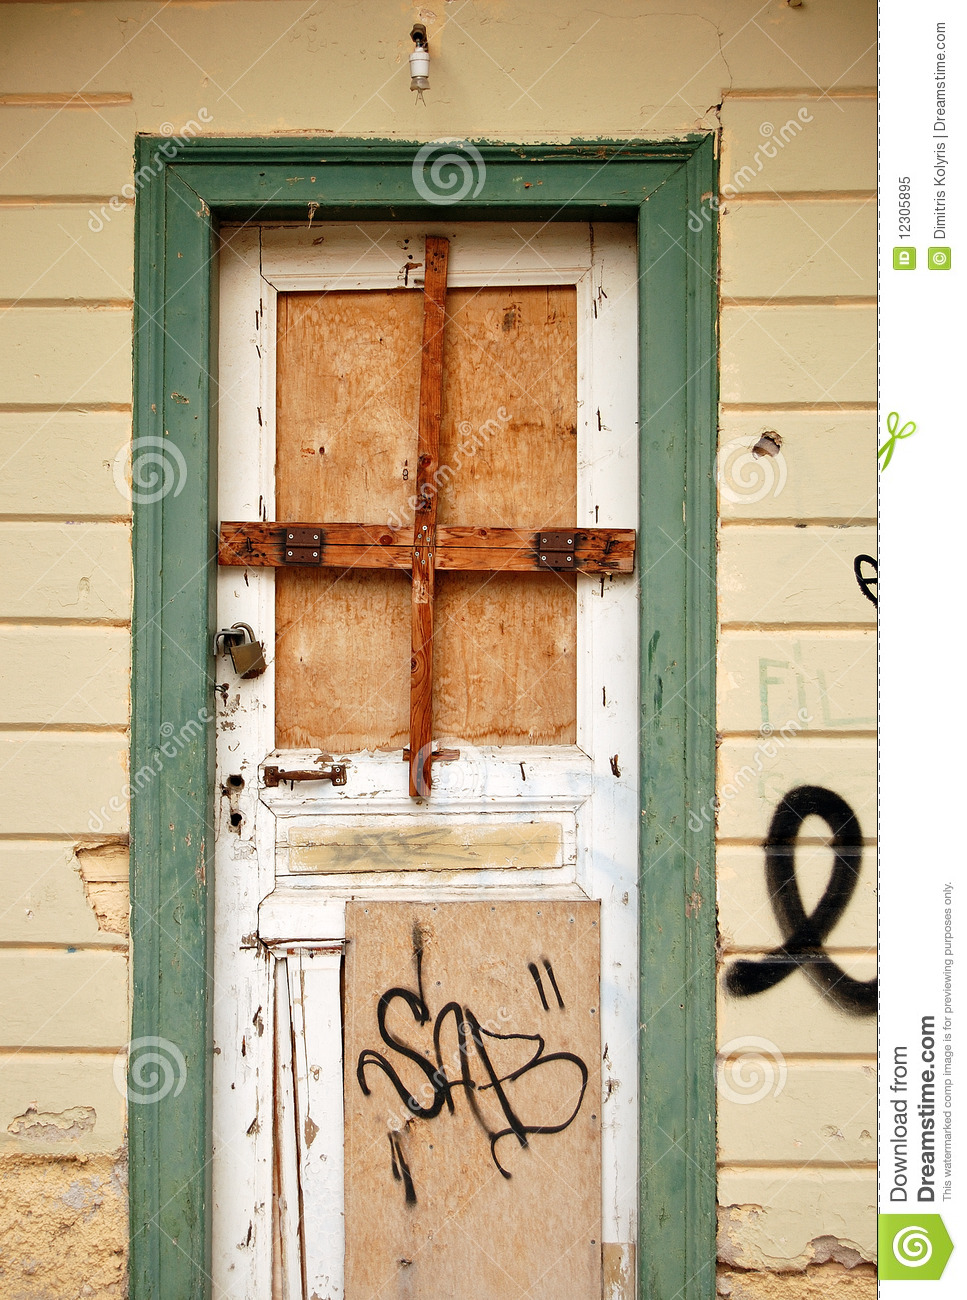 Boarded Up Door Royalty Free Stock Photo.